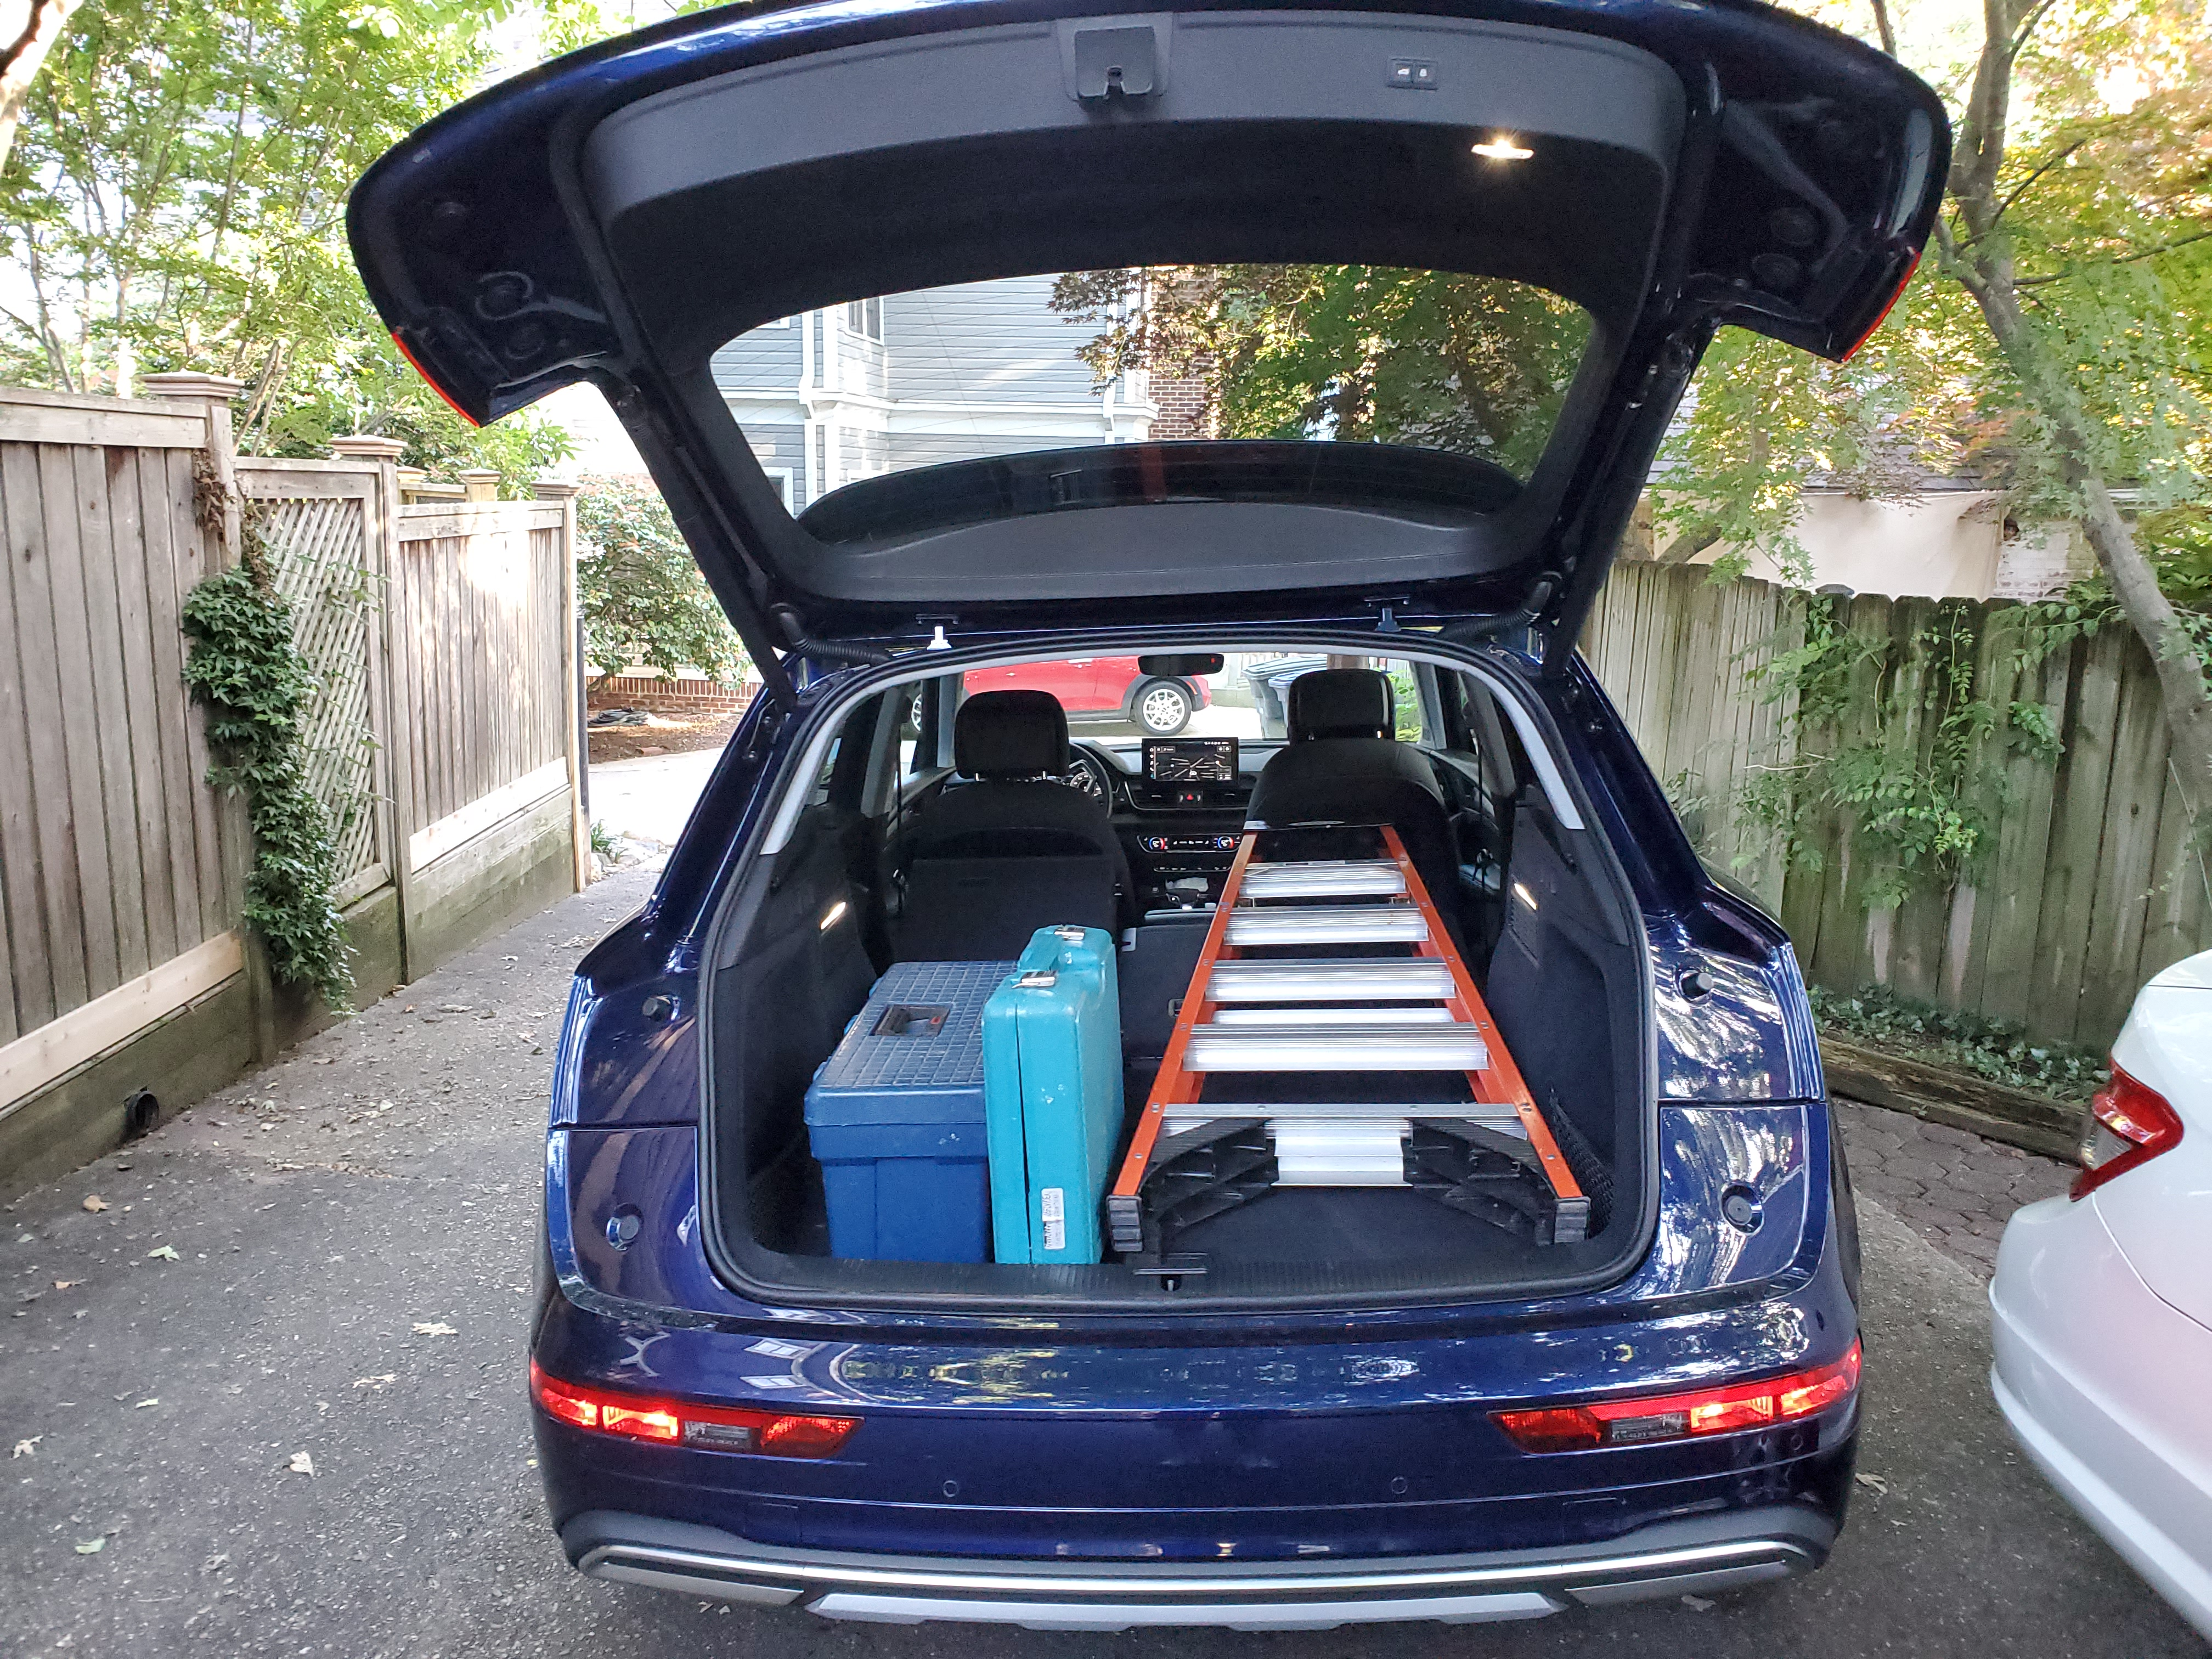 Audi Q5 cargo hatch open with ladder and tools